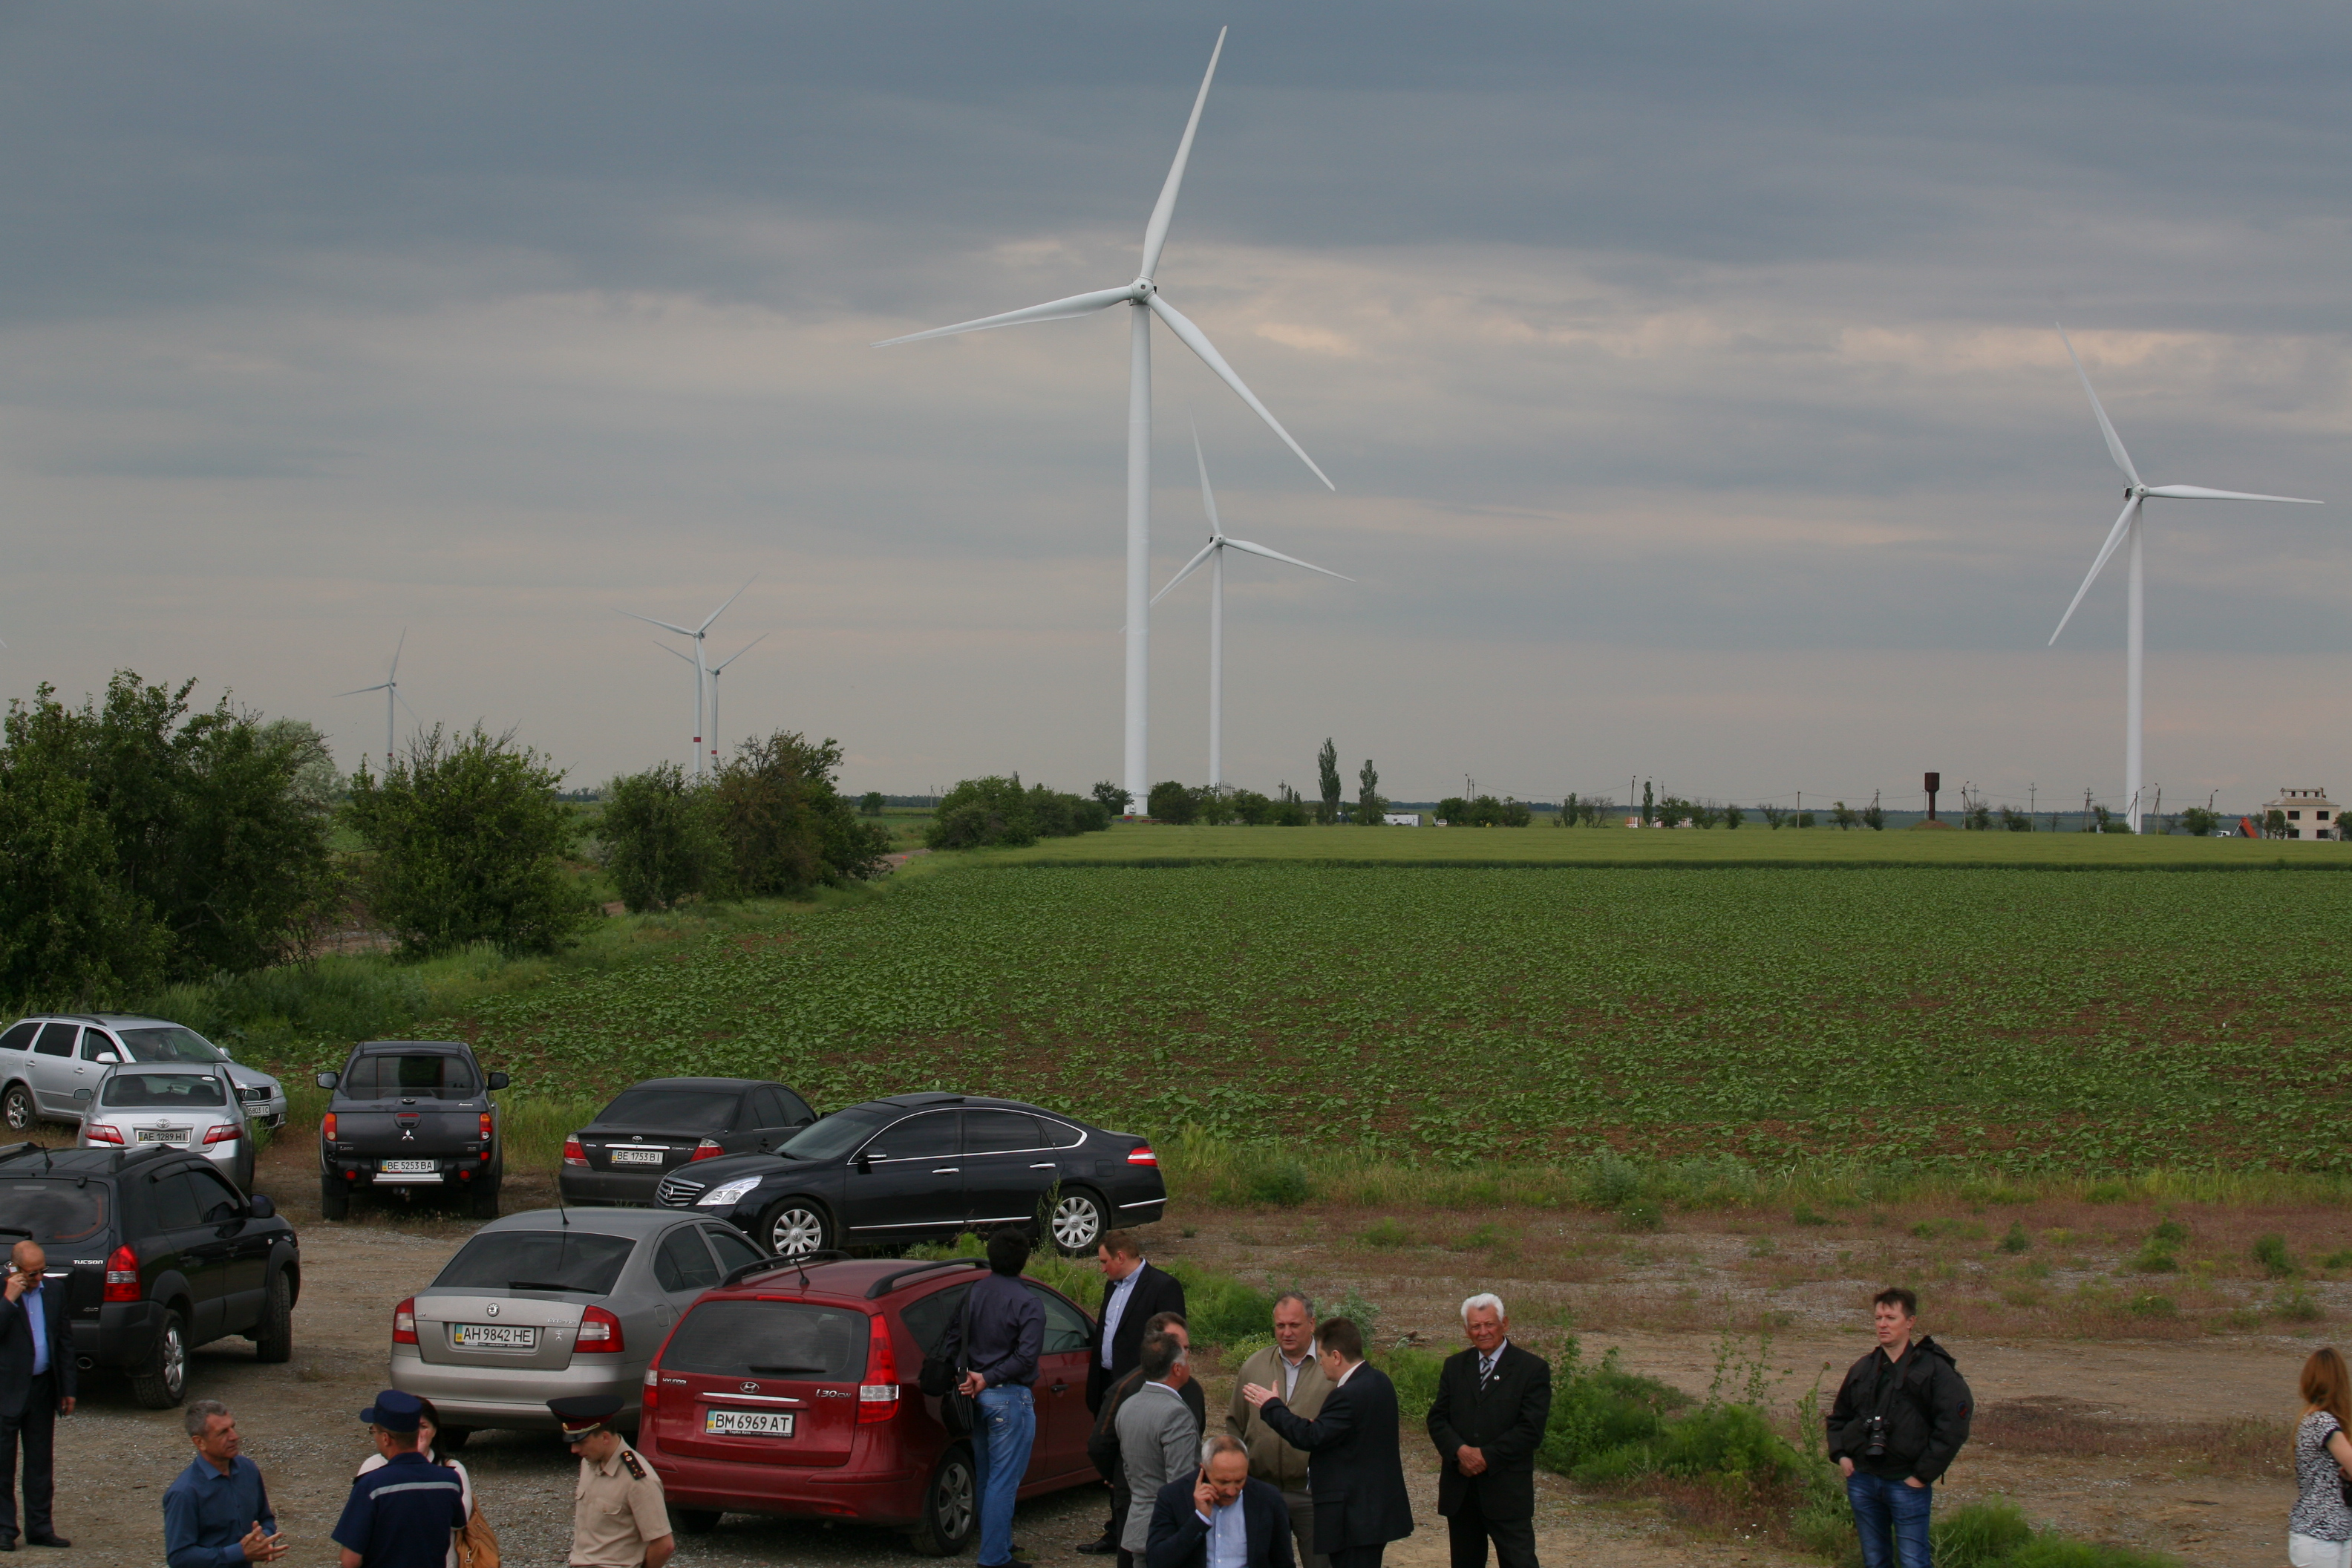 UKRAINE TO RESUME WIND ENERGY DEVELOPMENT - News | UWEA